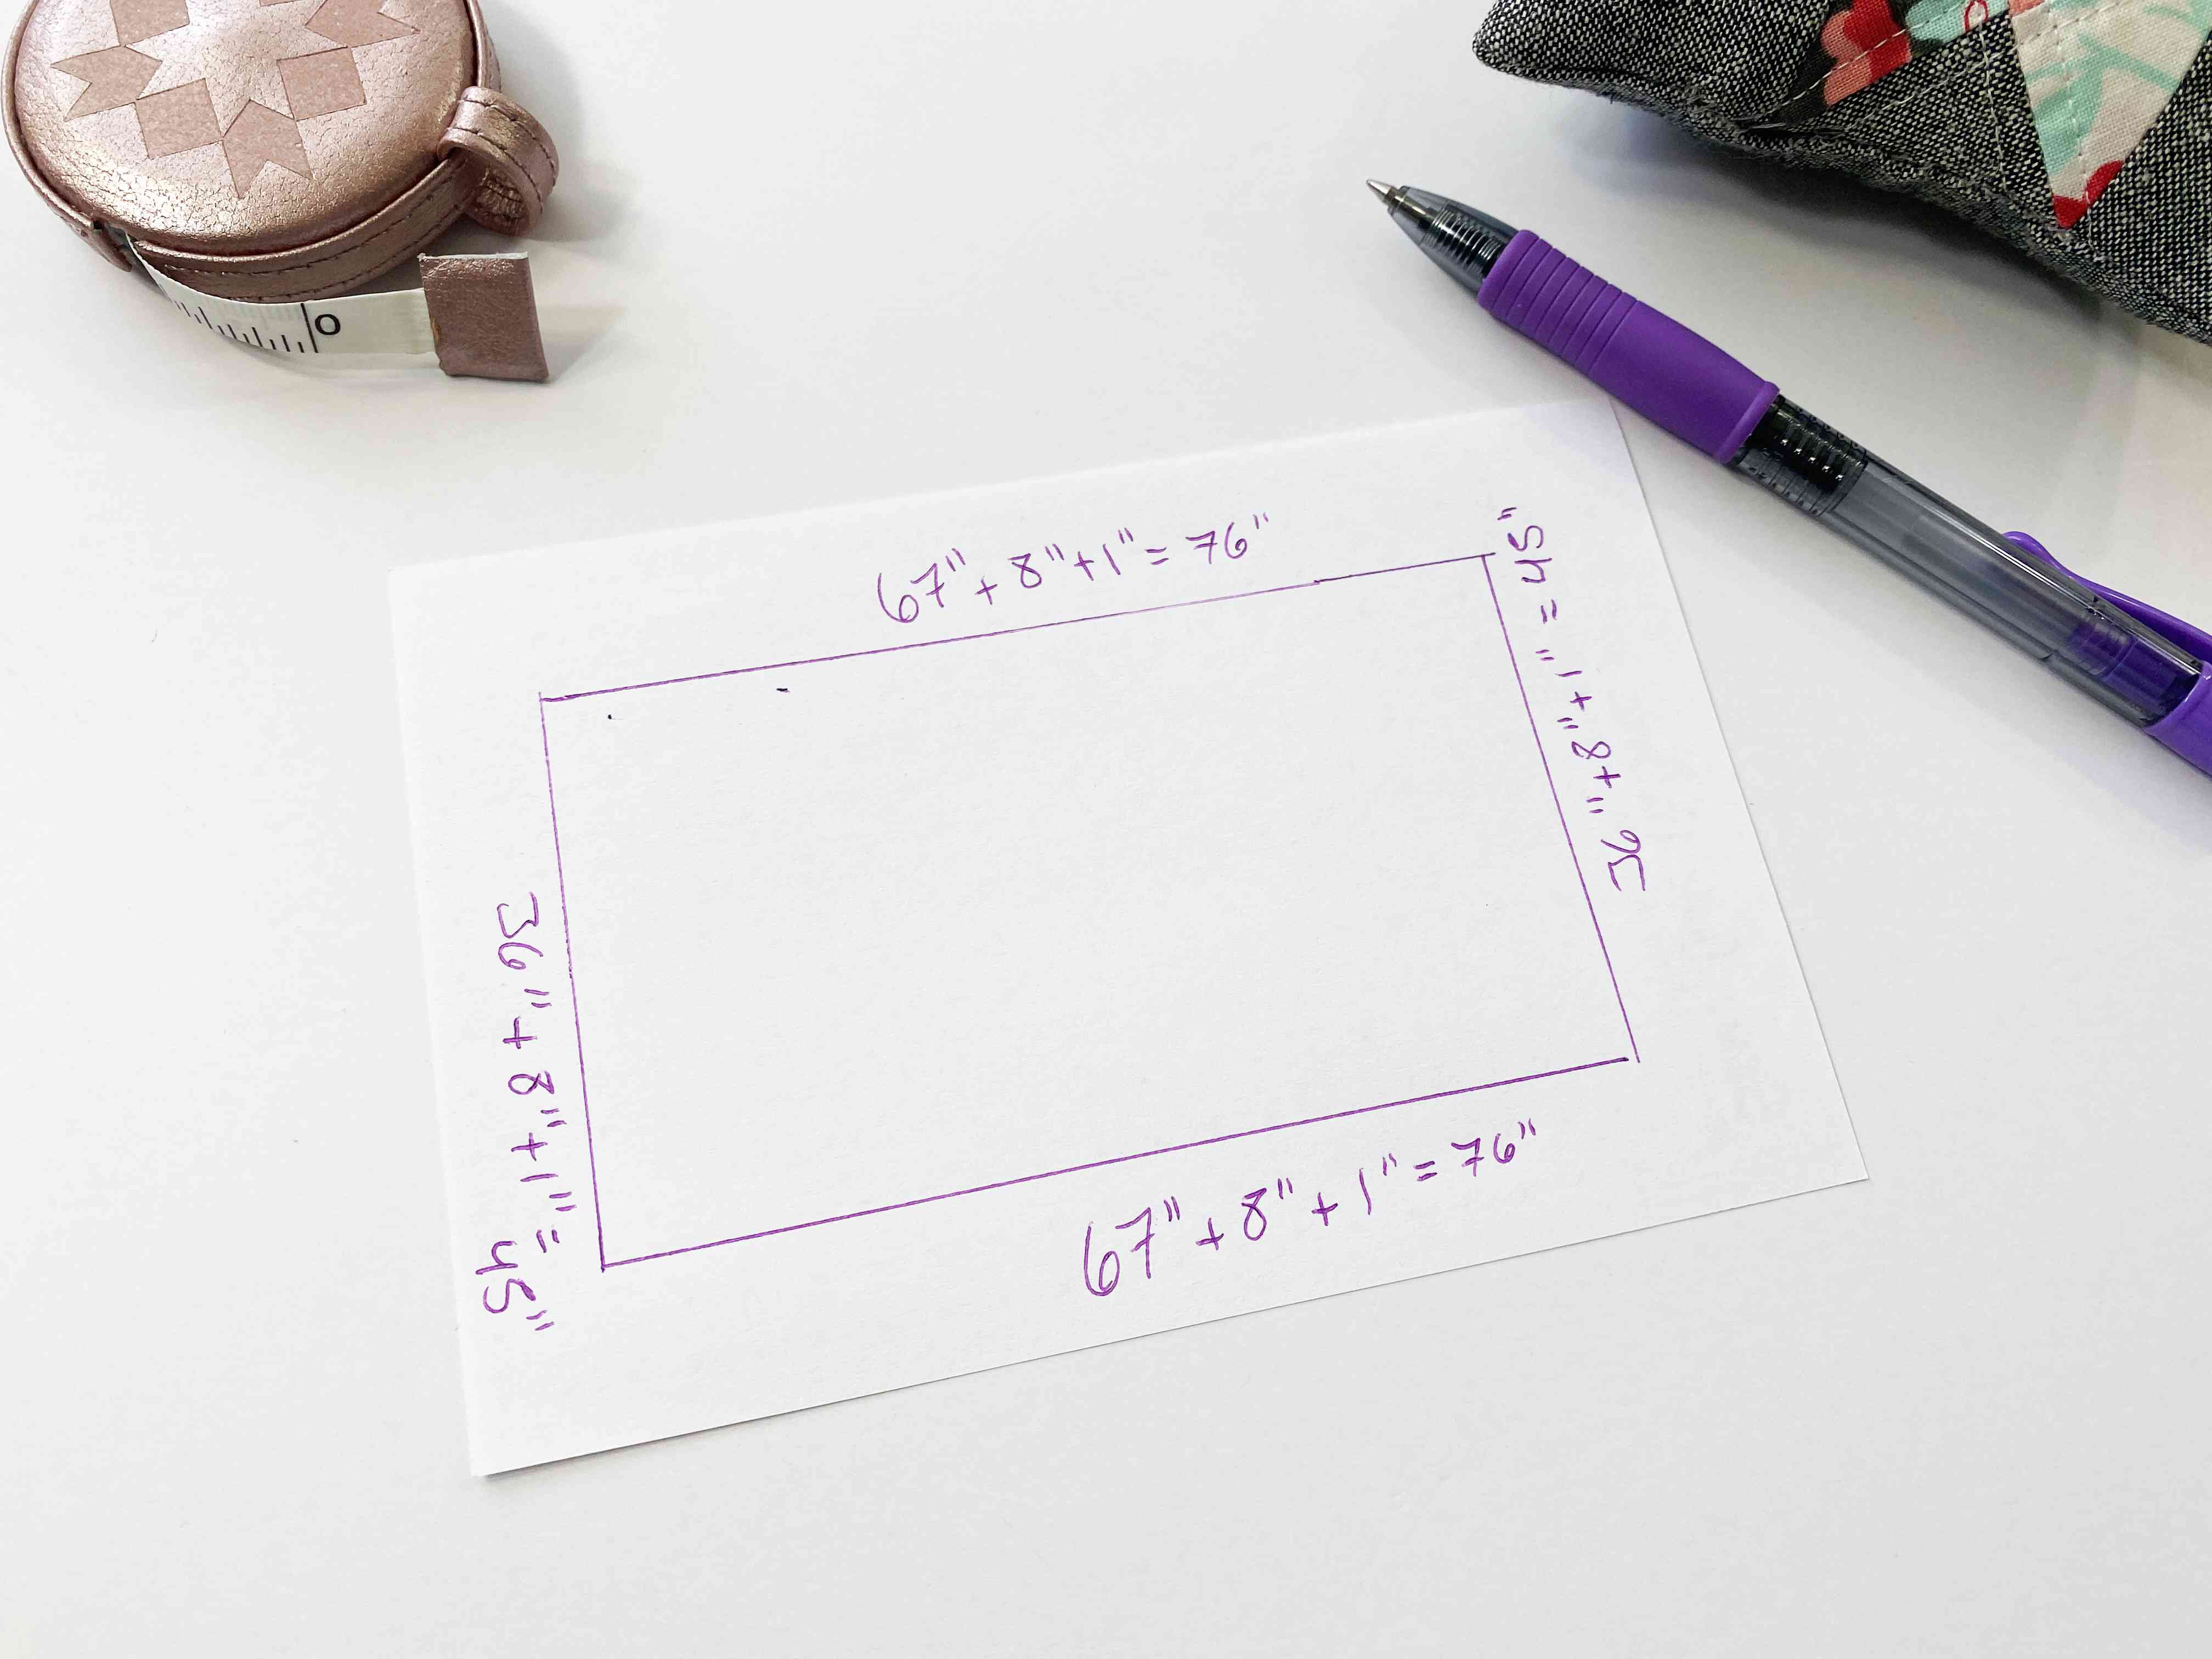 A diagram of a table, a pen, and other sewing notions